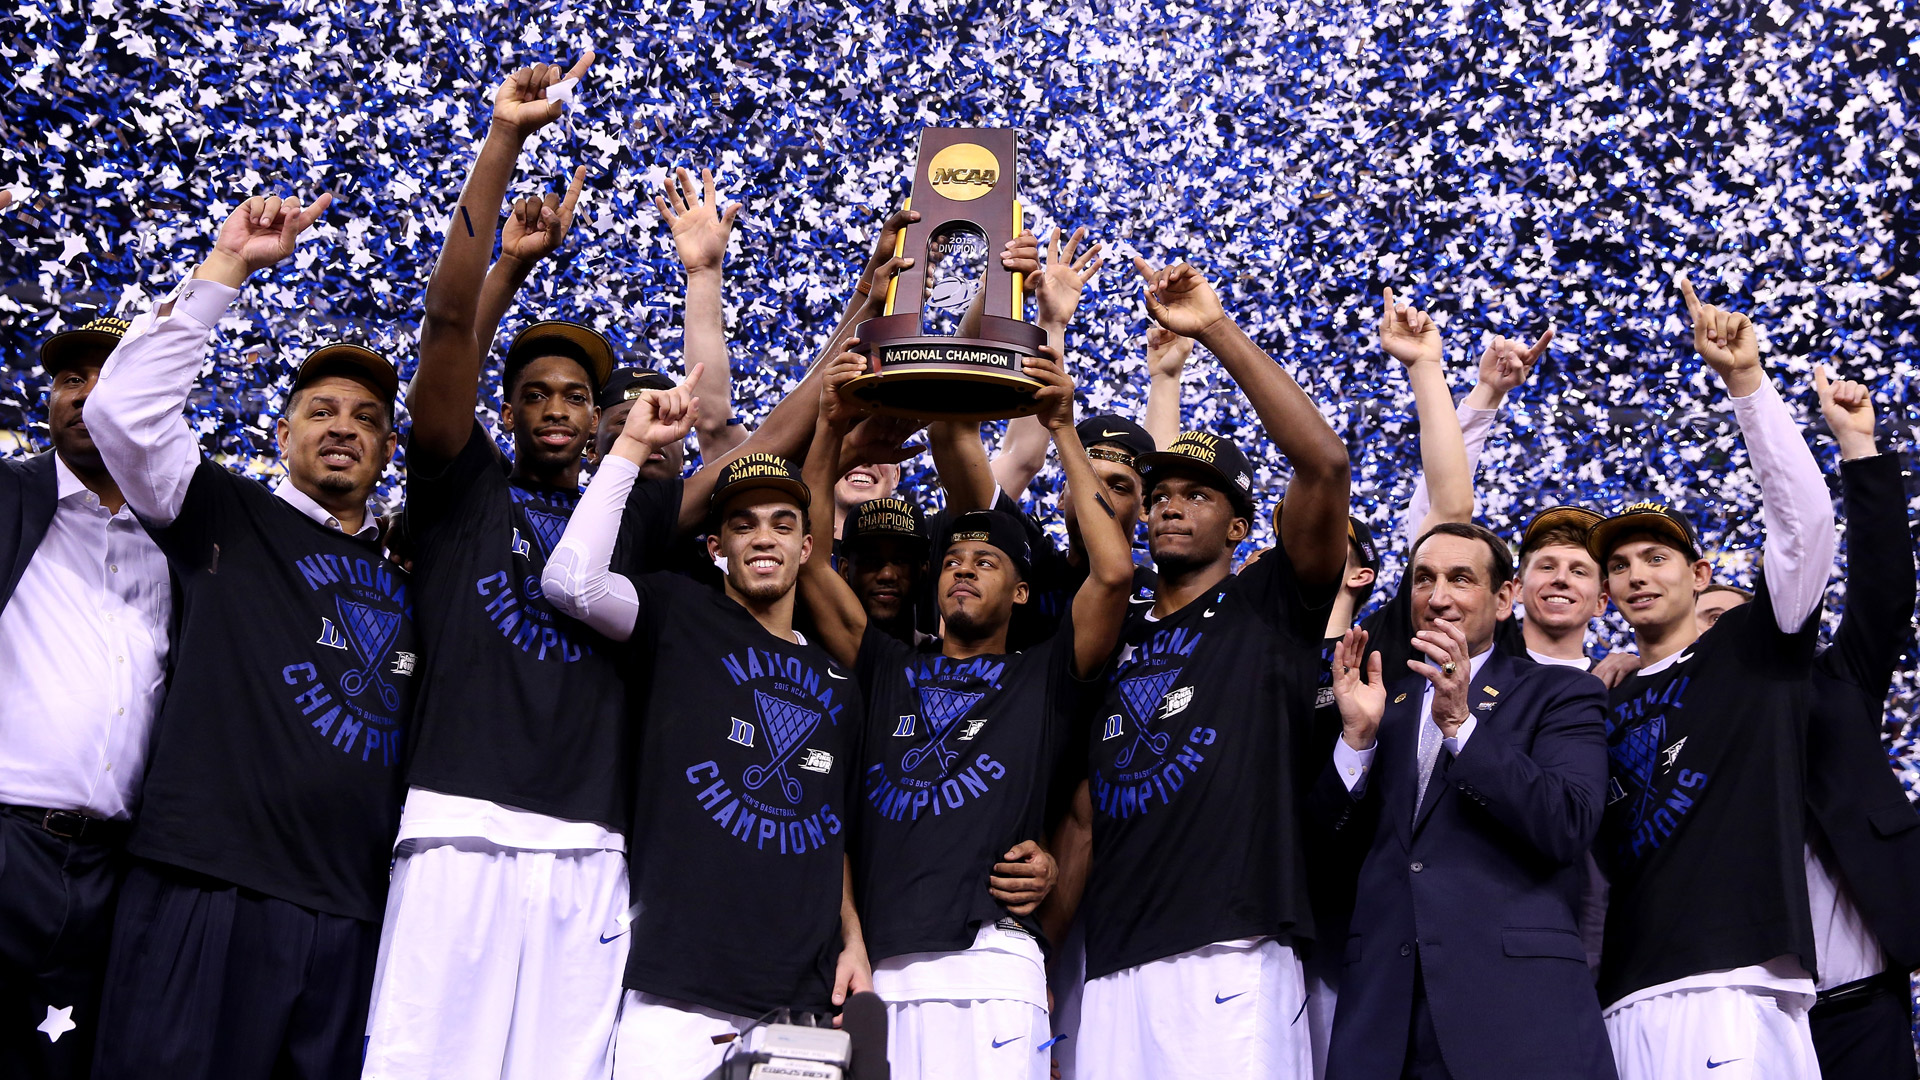 Must-see photos from the NCAA Tournament championship game ...